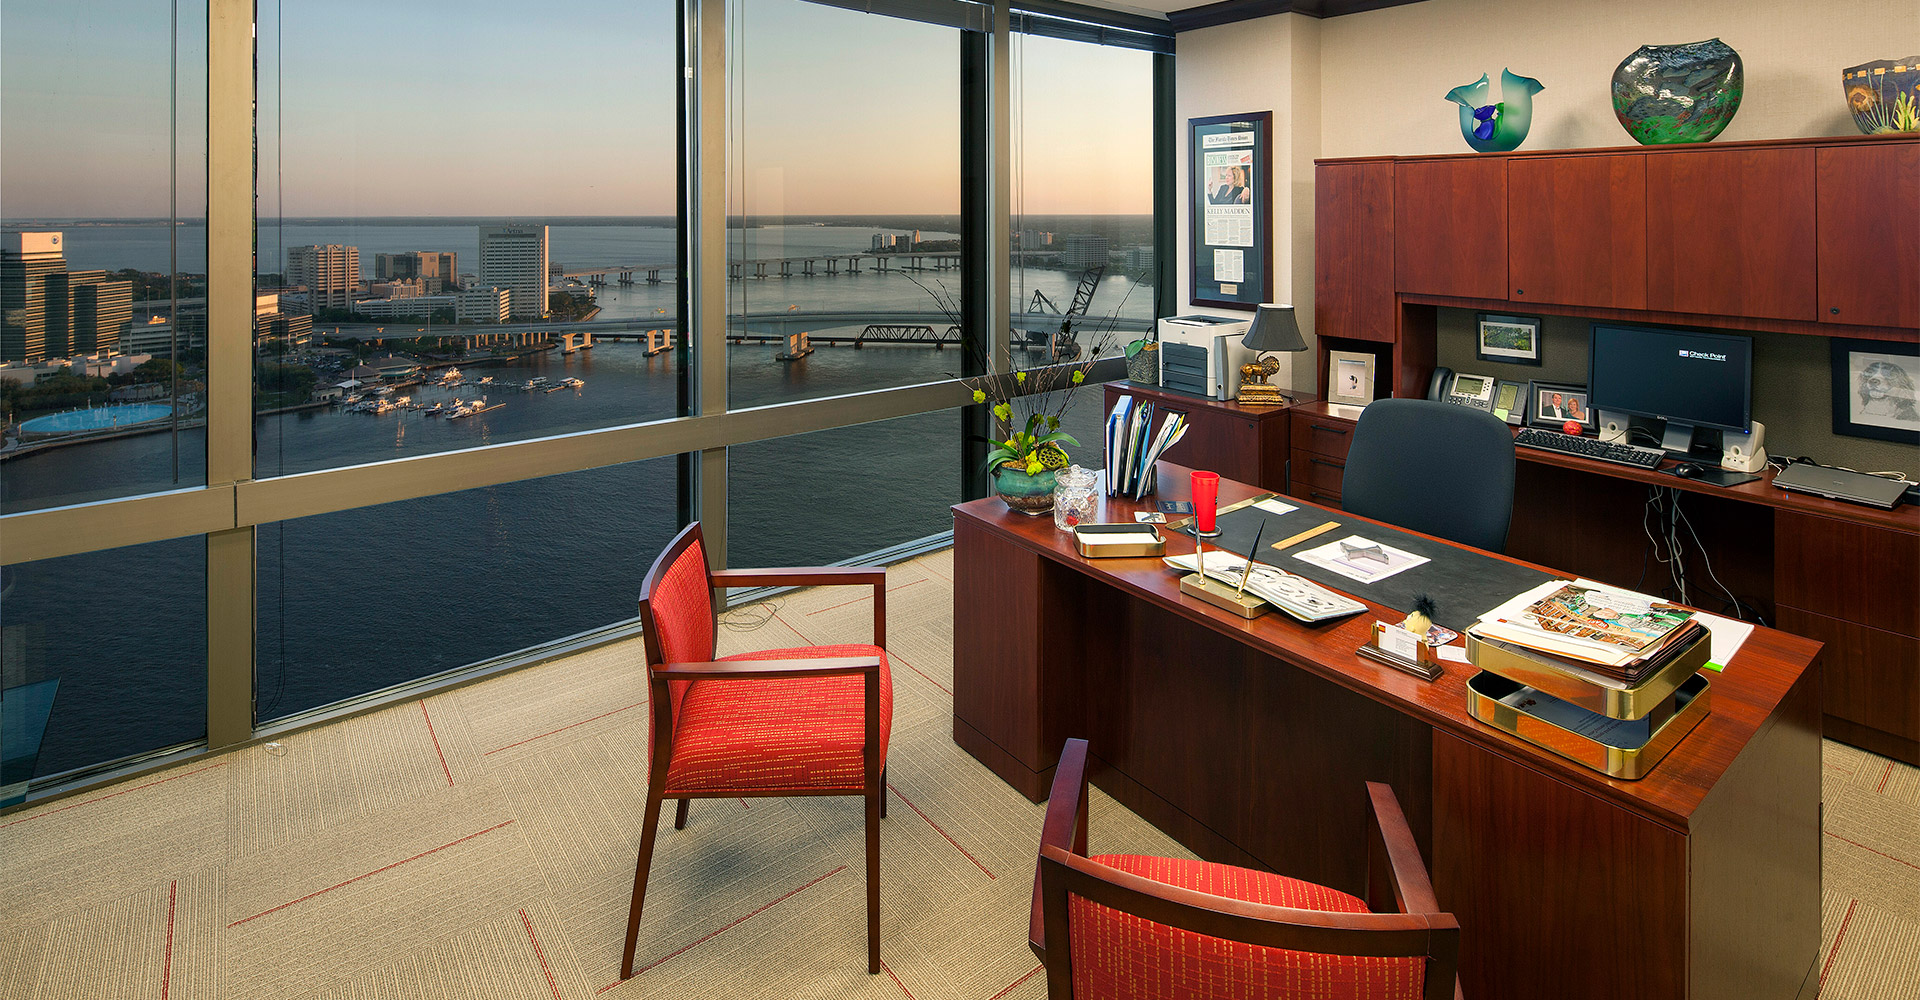 Executive office at Wells Fargo center with city view.